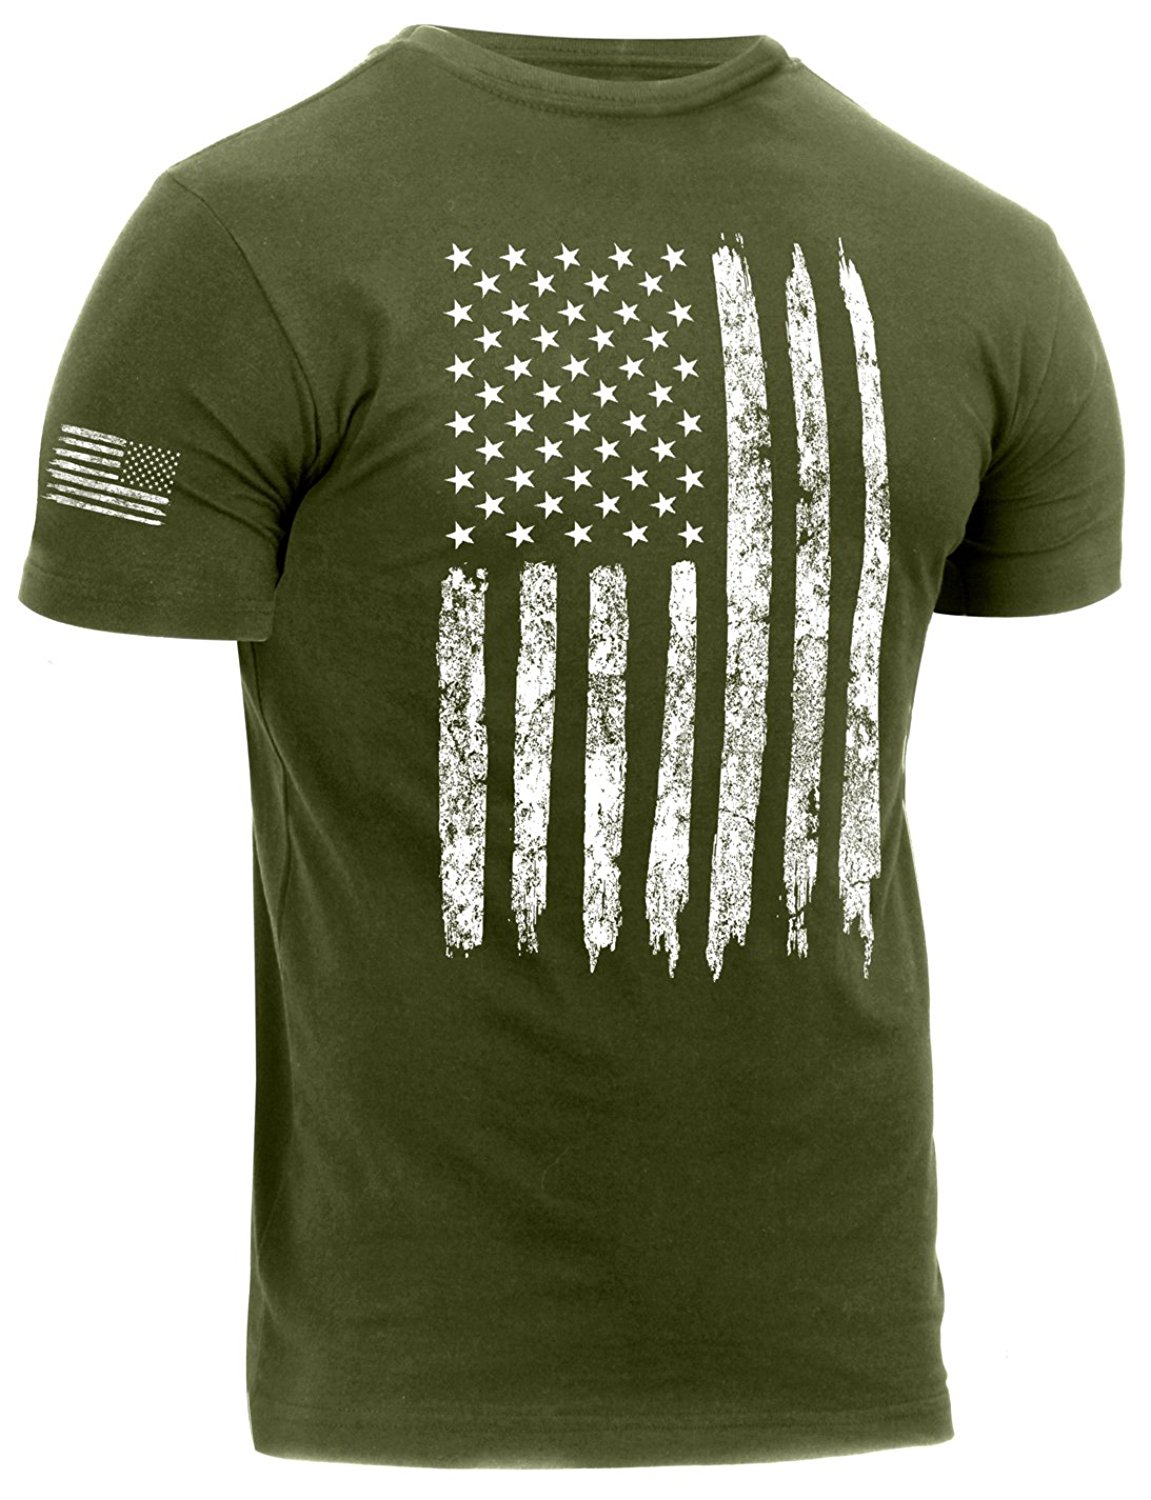 Rothco Distressed US Flag Athletic Fit T-Shirt - Olive Drab, X-Large